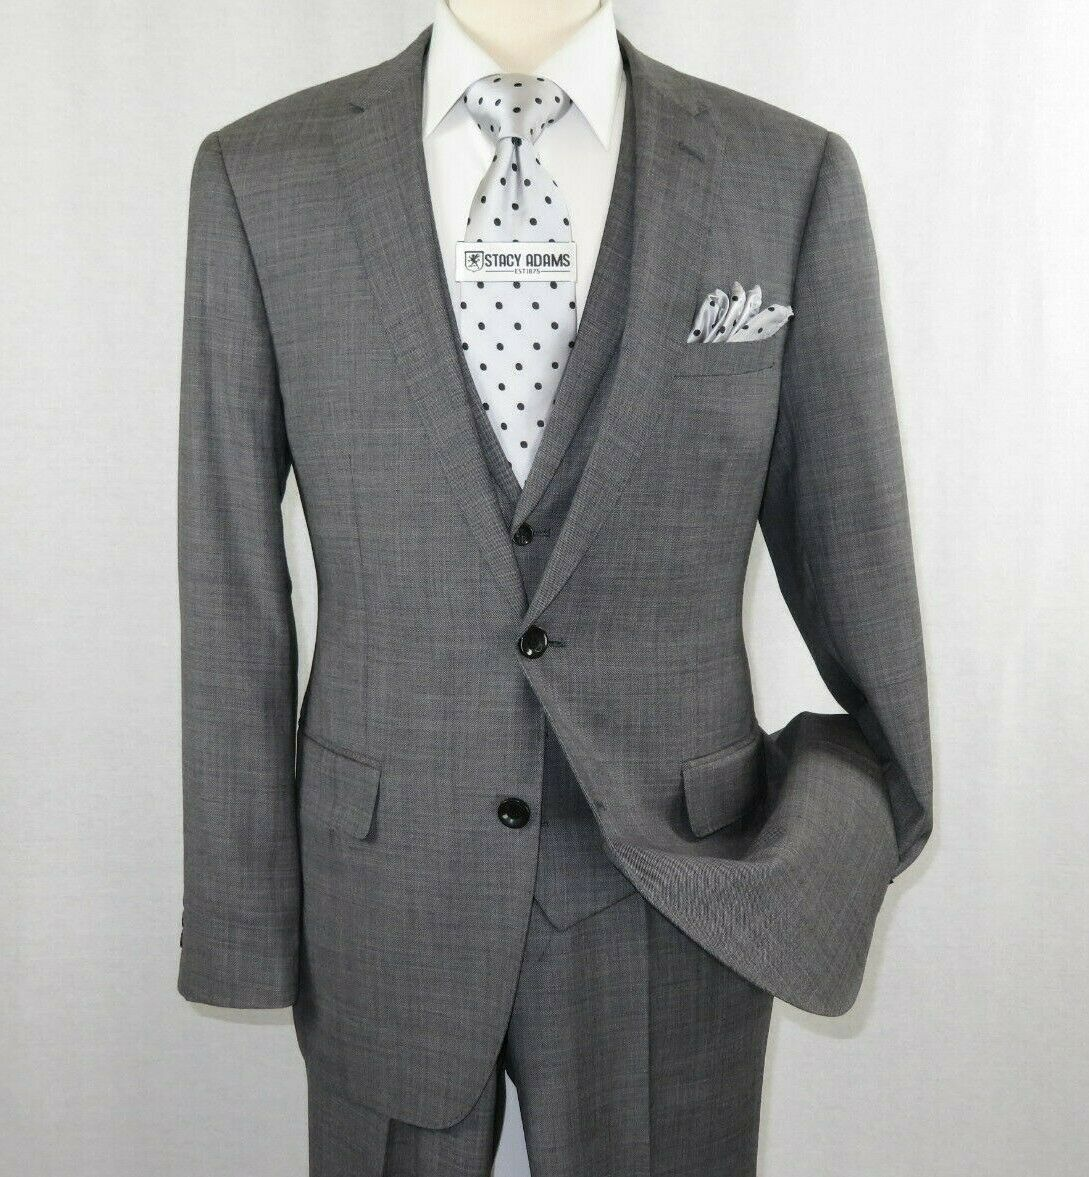 Primary image for Mens Apollo King 3 piece Business Suit Vest with Lapel Sharkskin SL203 Gray New